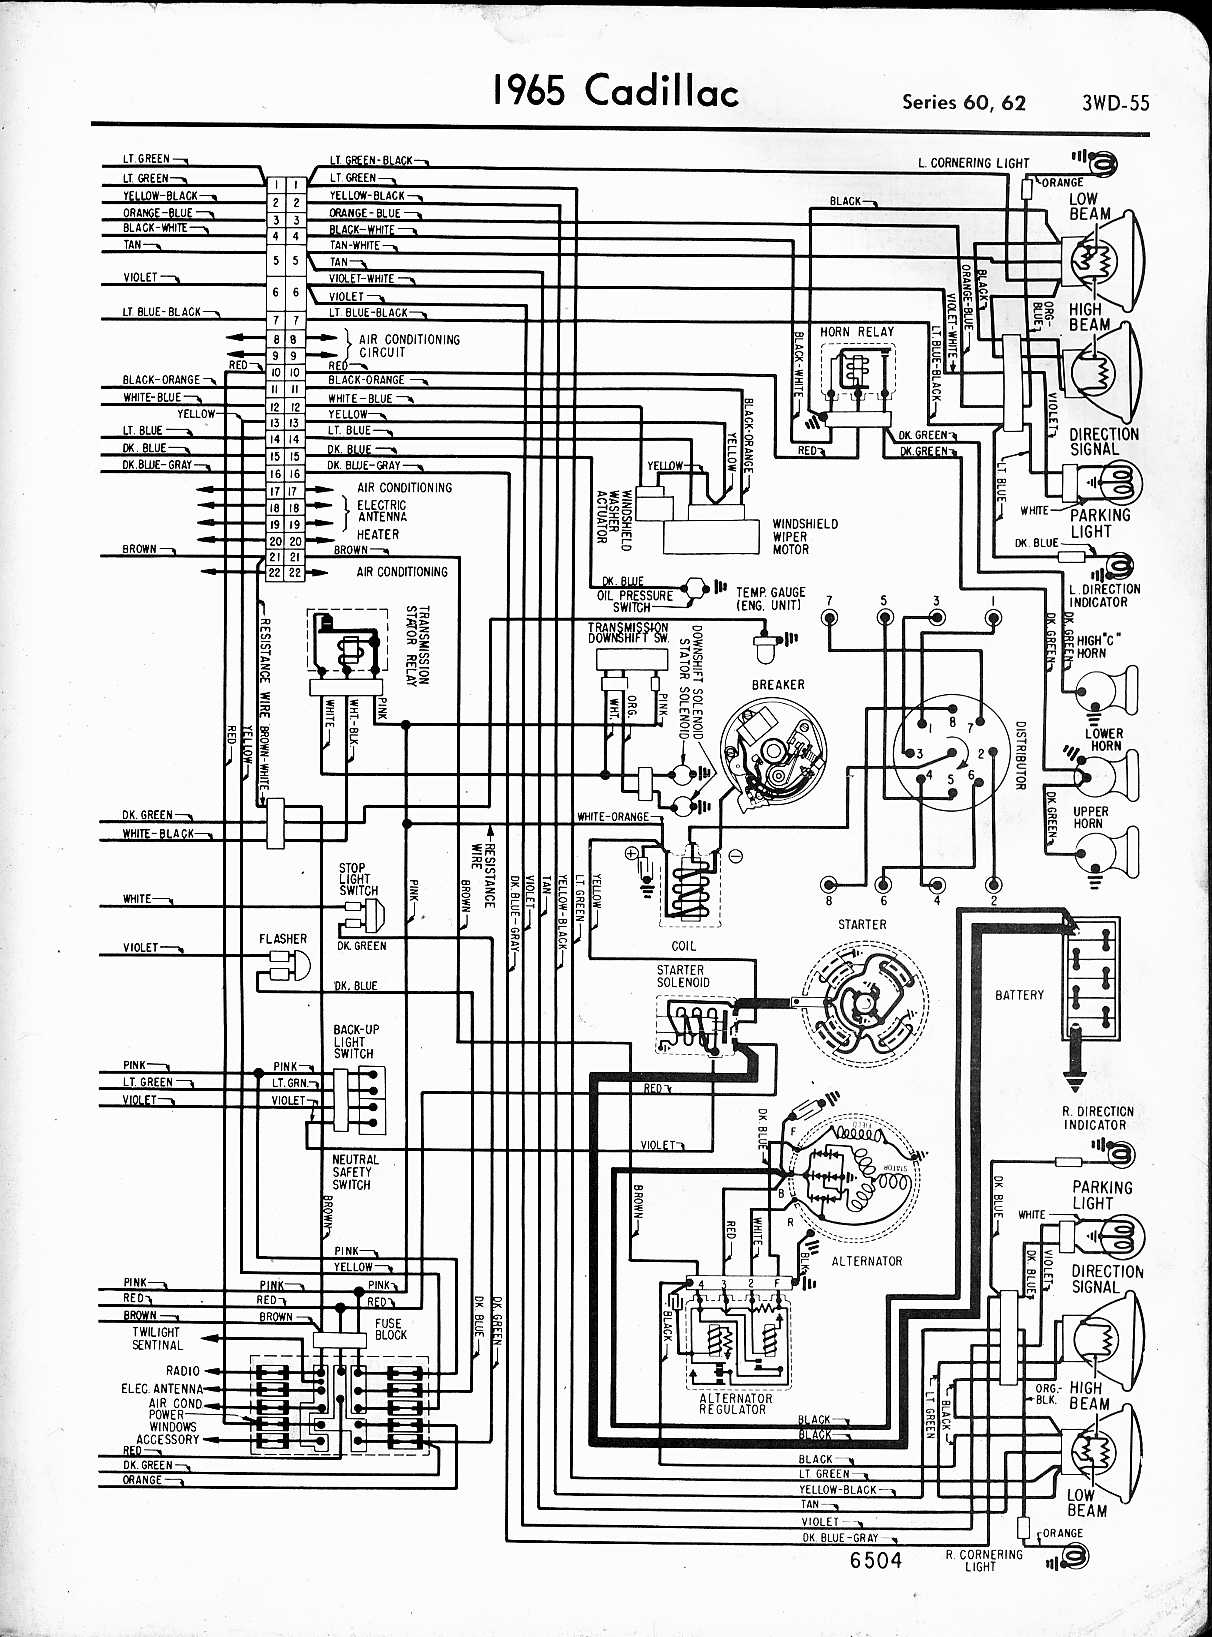 1966 Cadillac Alternator Wiring Diagram All Wire Ford